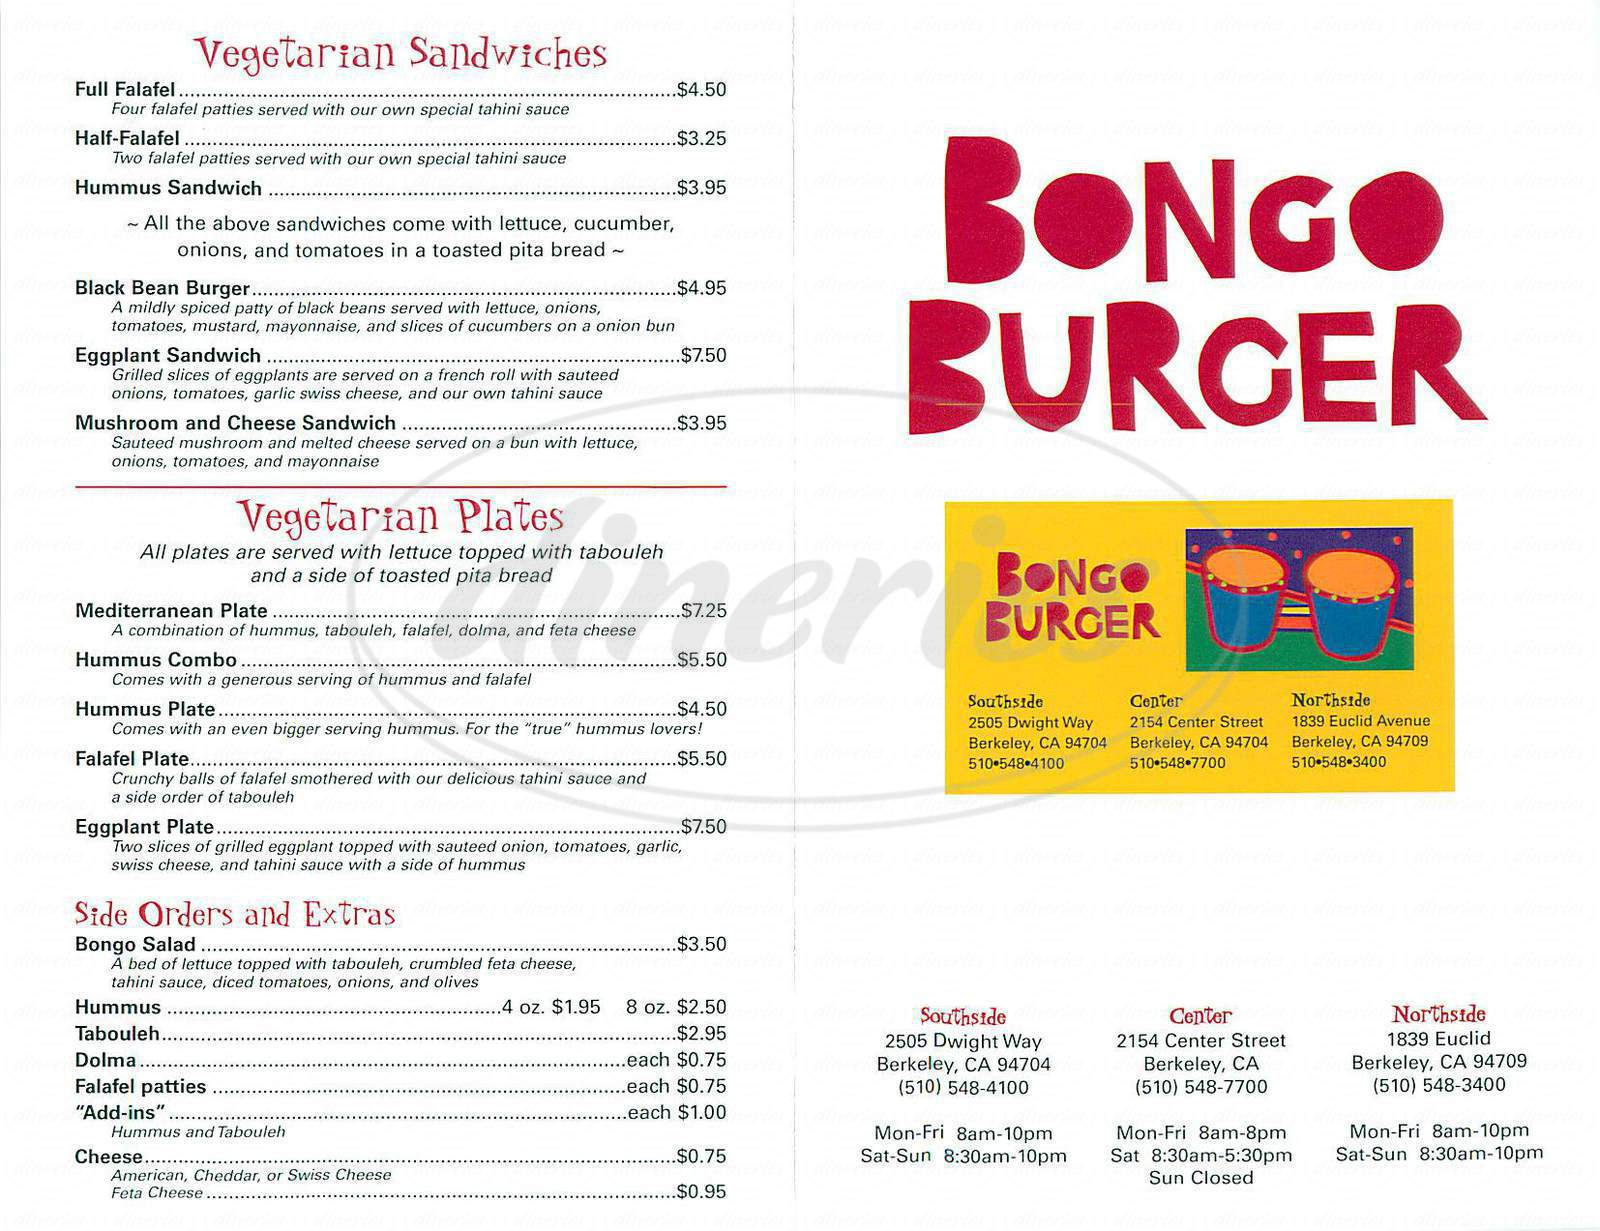 menu for Bongo Burger